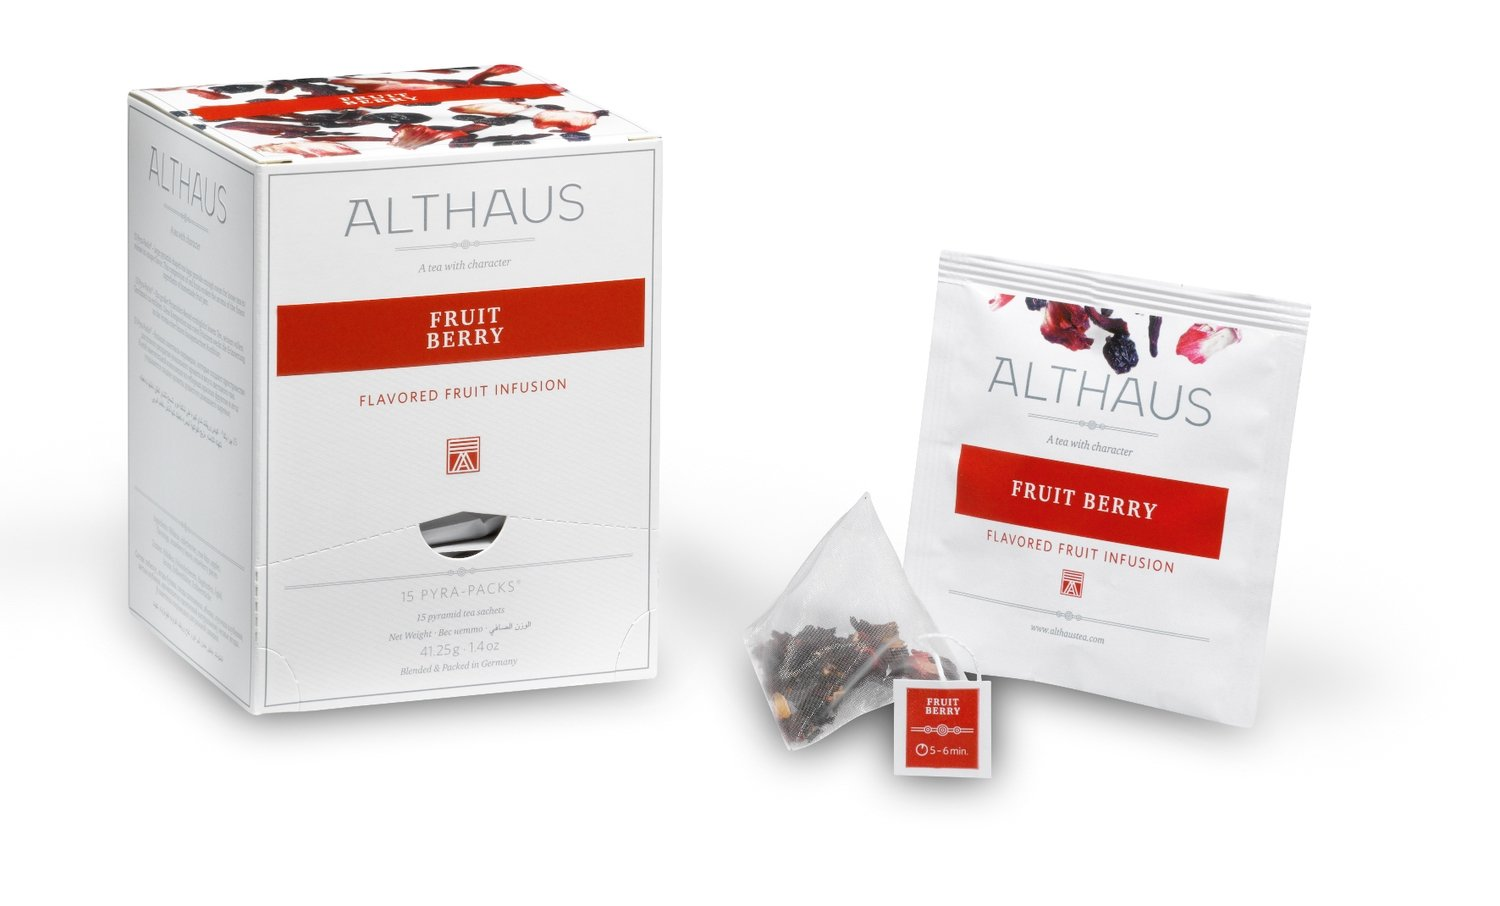 Althaus Pyra Pack Fruit Berry